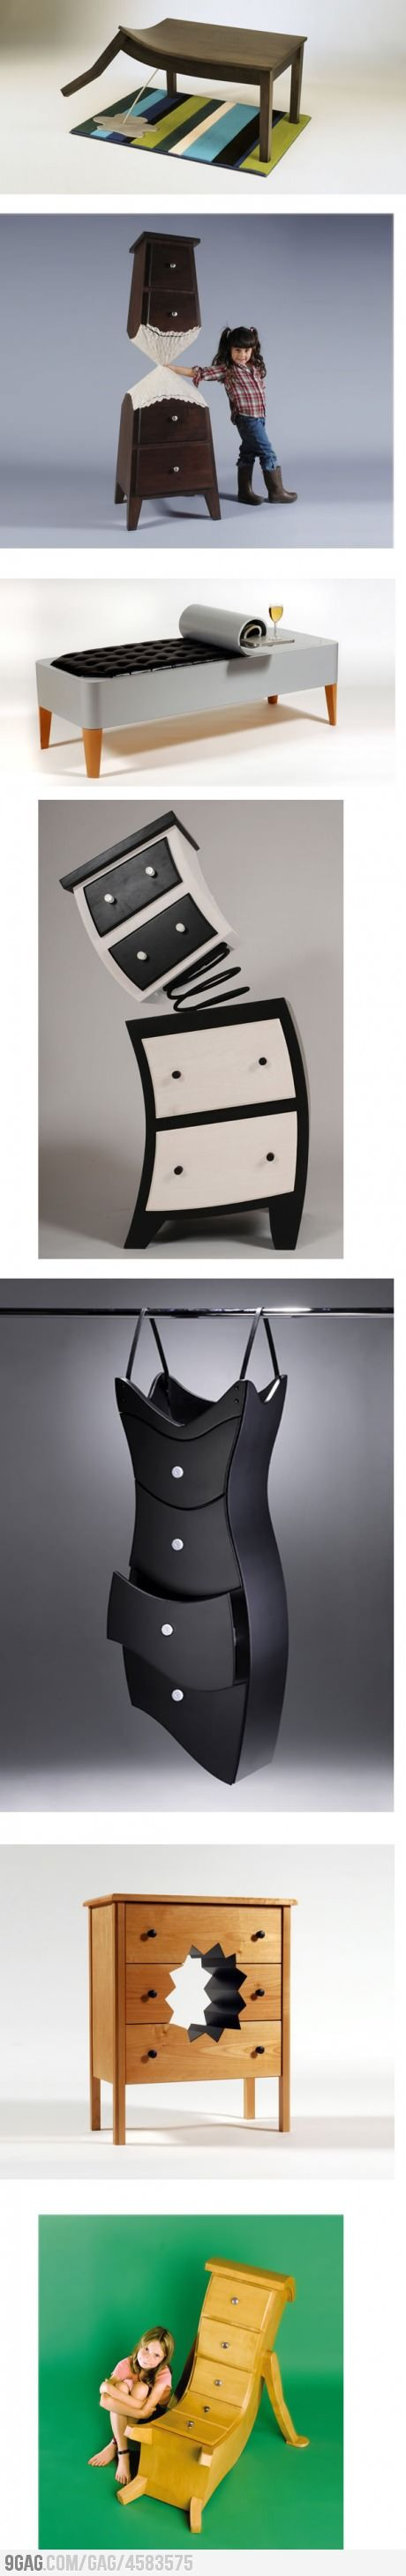 Furniture designers are some of the most interesting people.